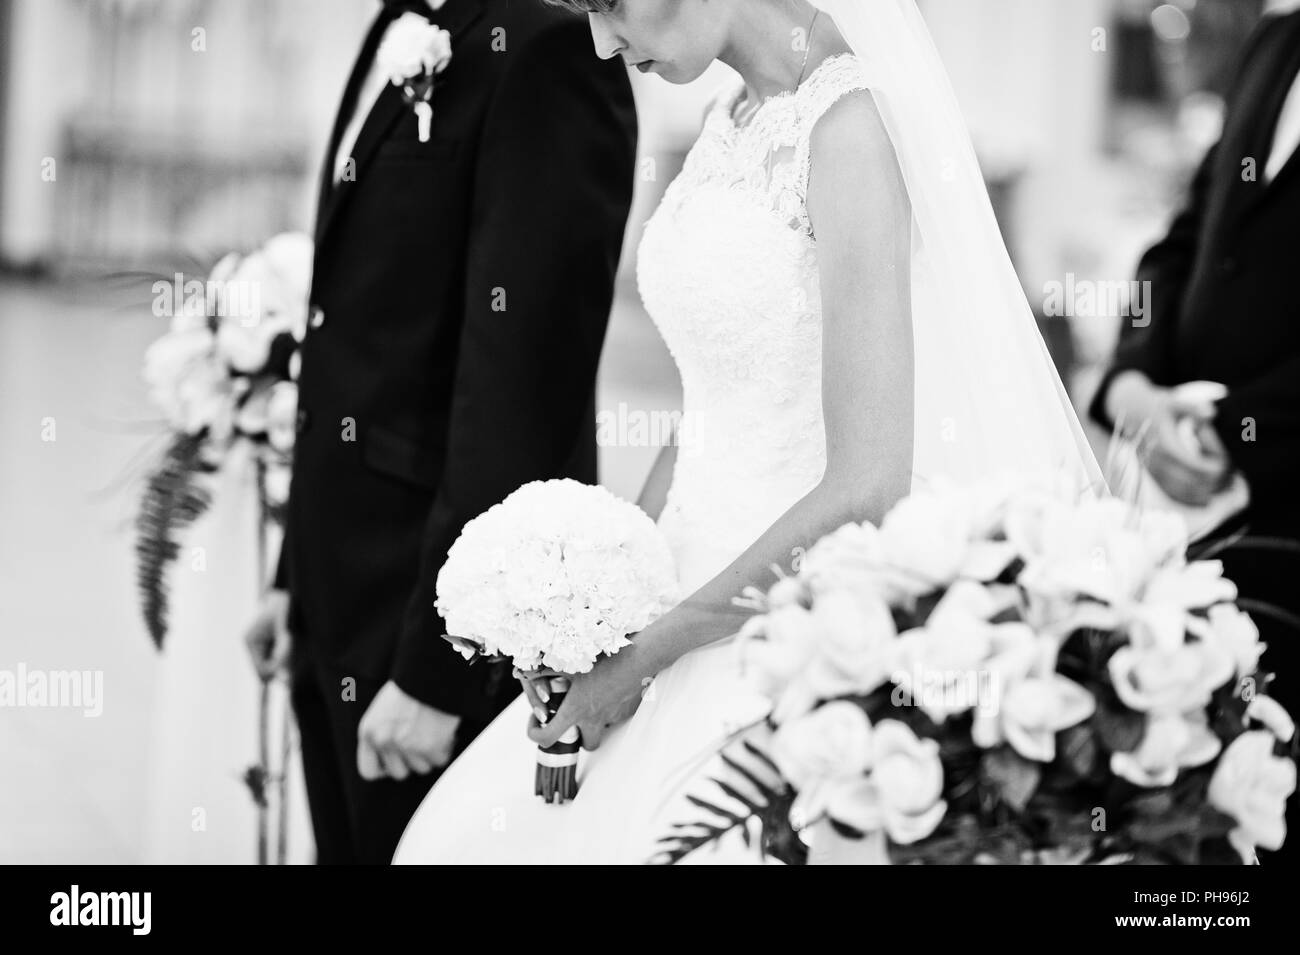 Black and white portrait of wedding couple at church - Stock Image